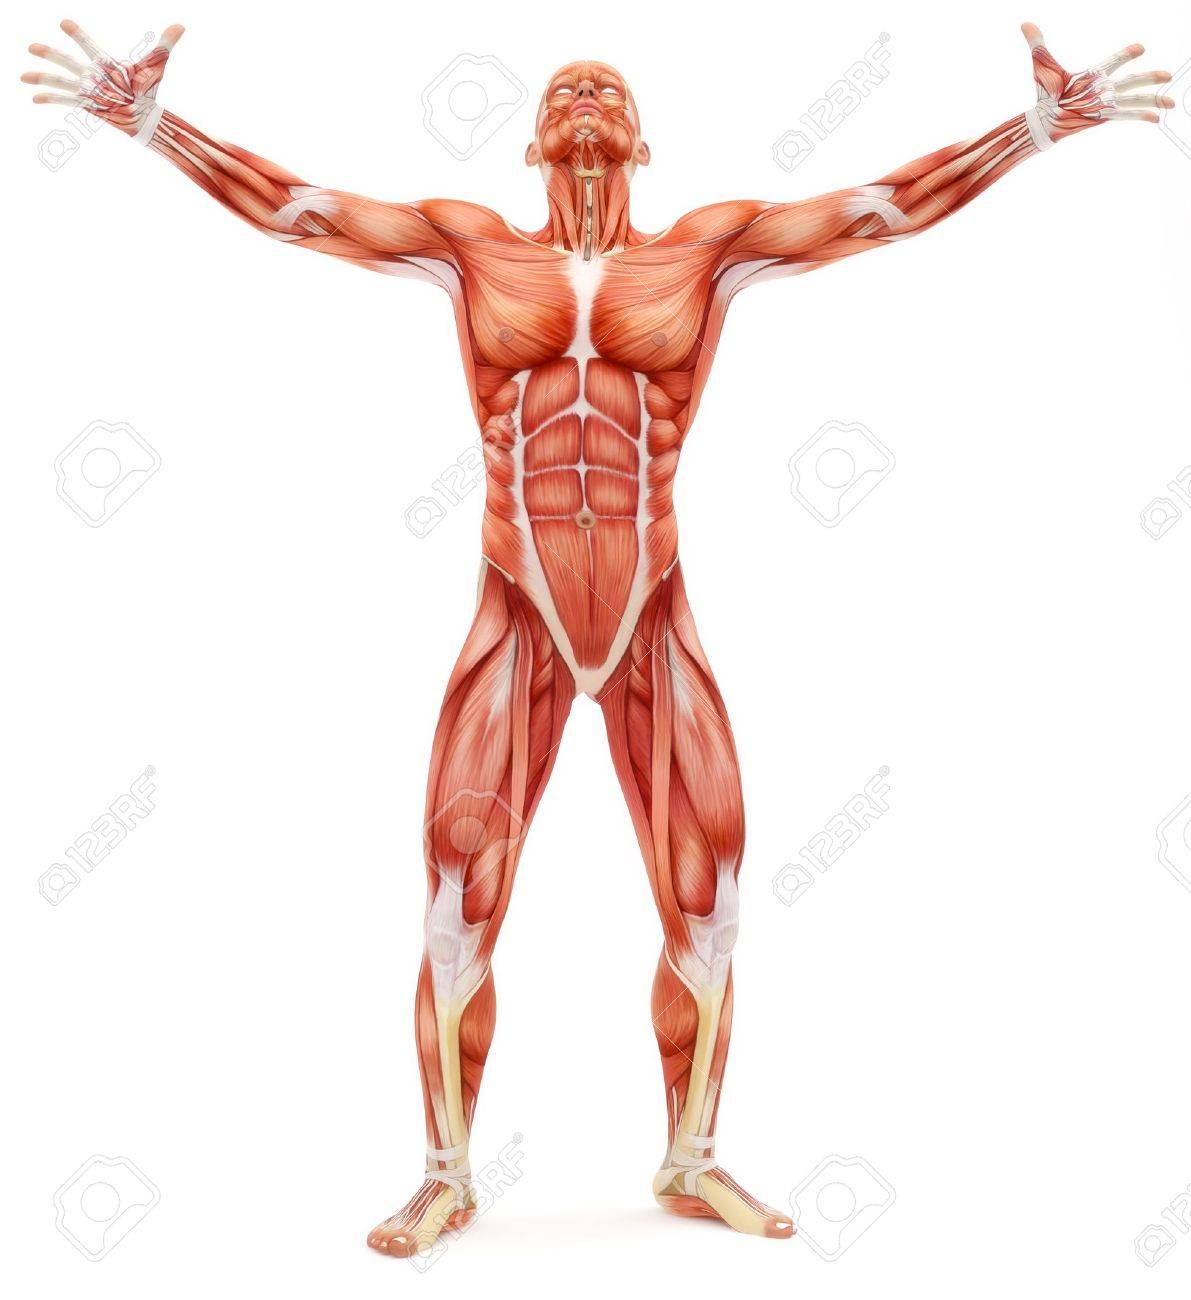 Male Musculoskeletal System Looking Upward Isolated On A White ...